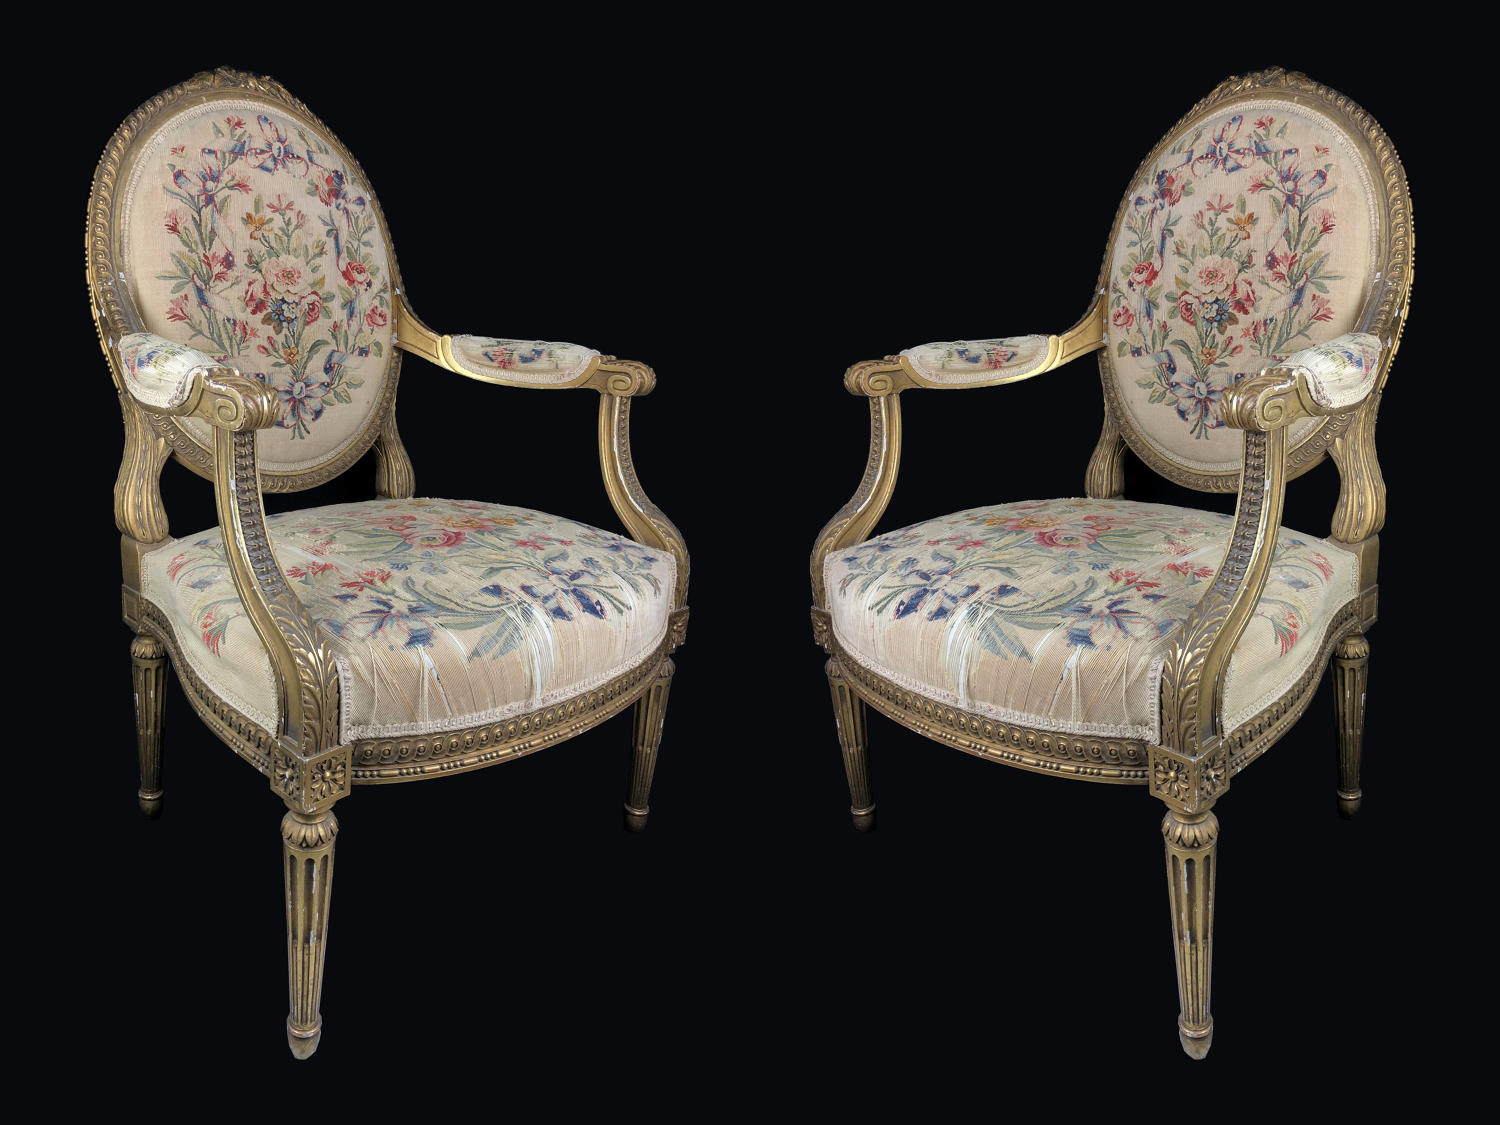 A set of four gilt-wood arm chairs